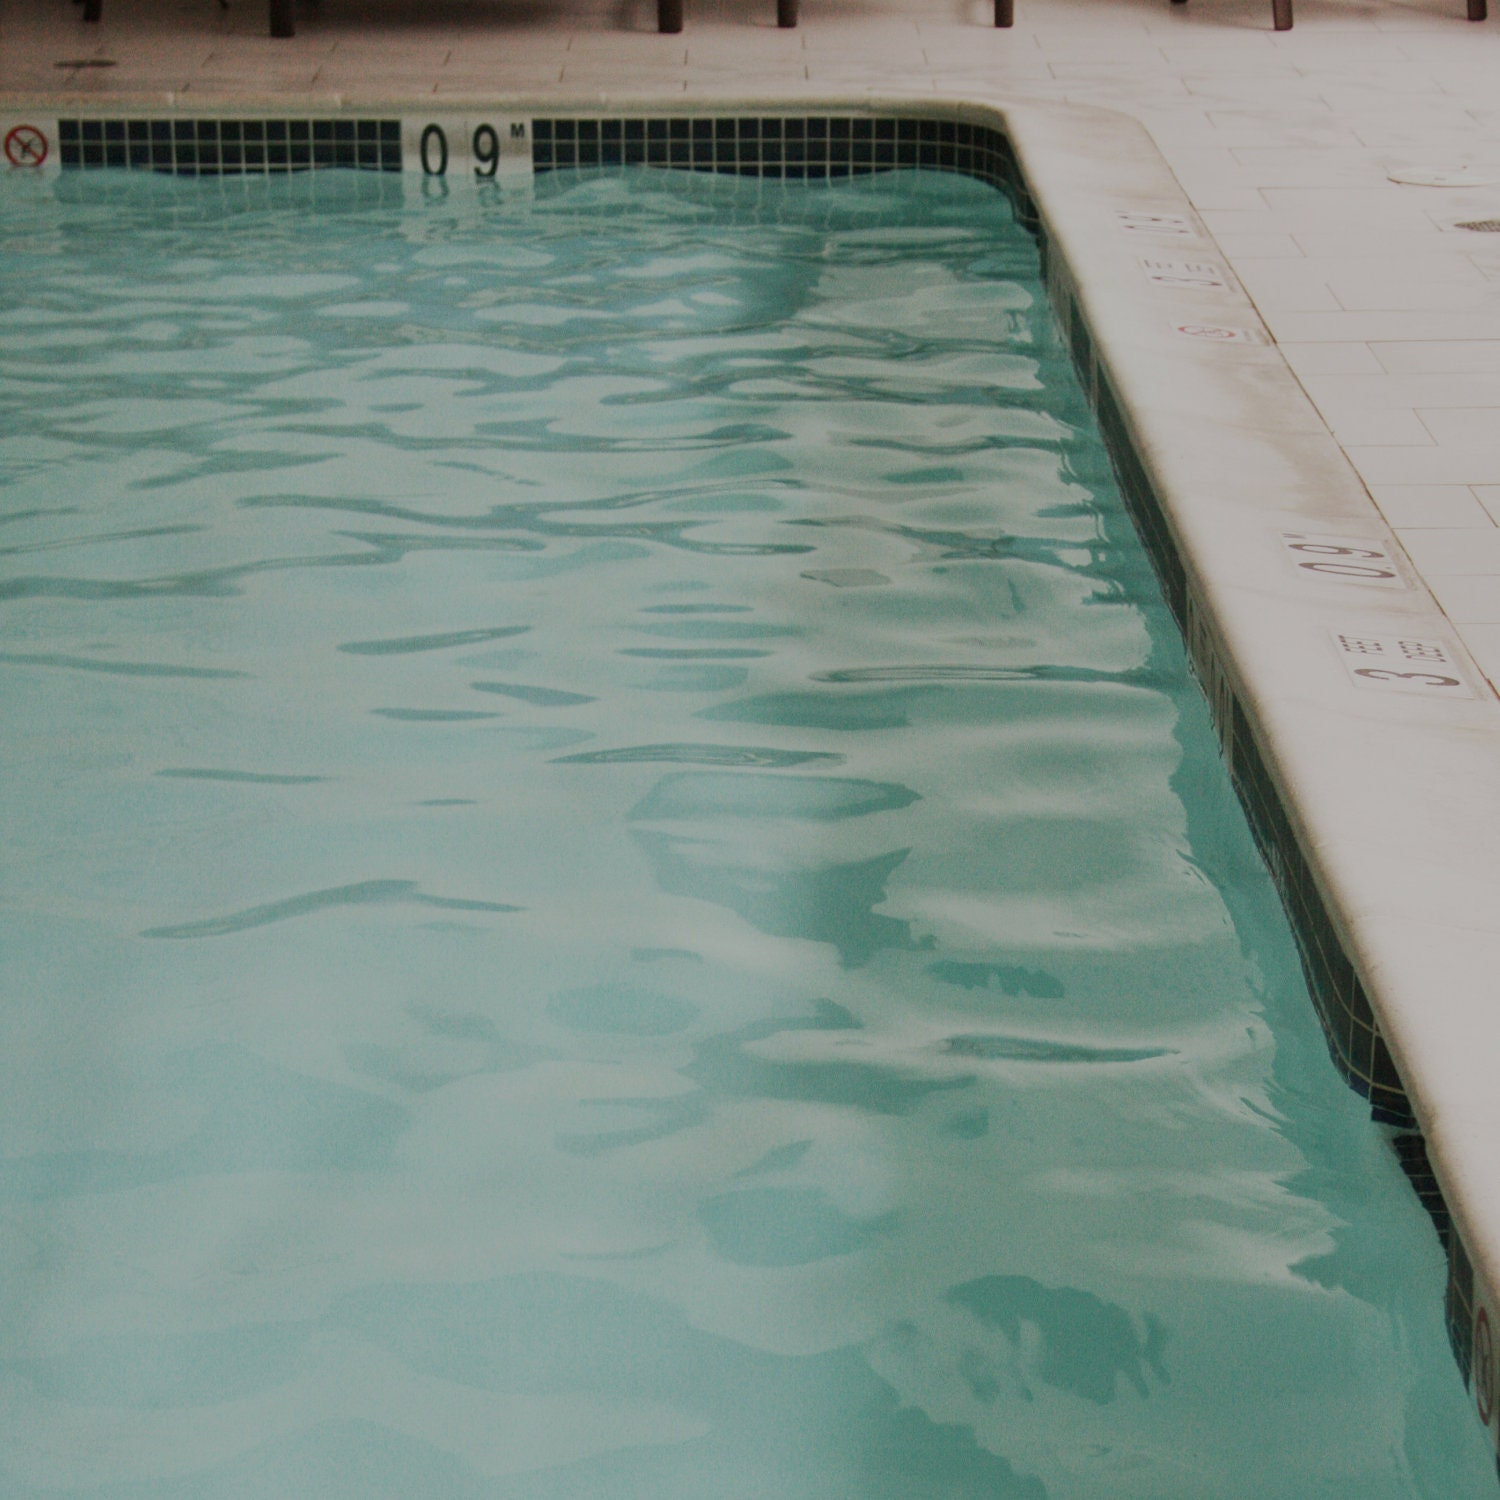 Vintage swimming pools type - Where is my nearest swimming pool ...